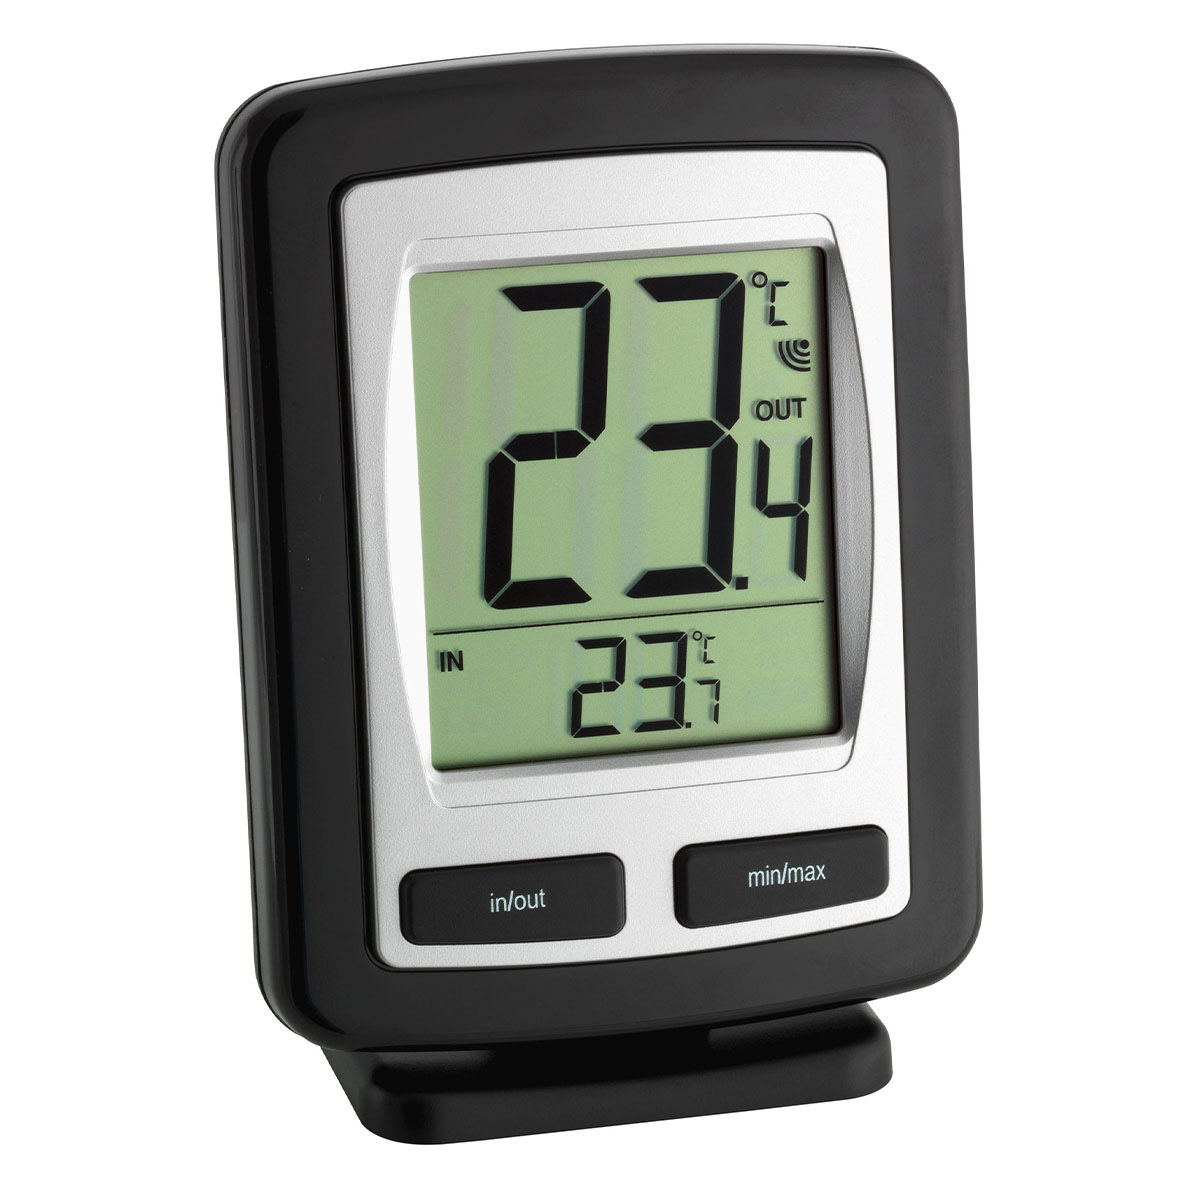 30-3040-it-funk-thermometer-zoom-1200x1200px.jpg